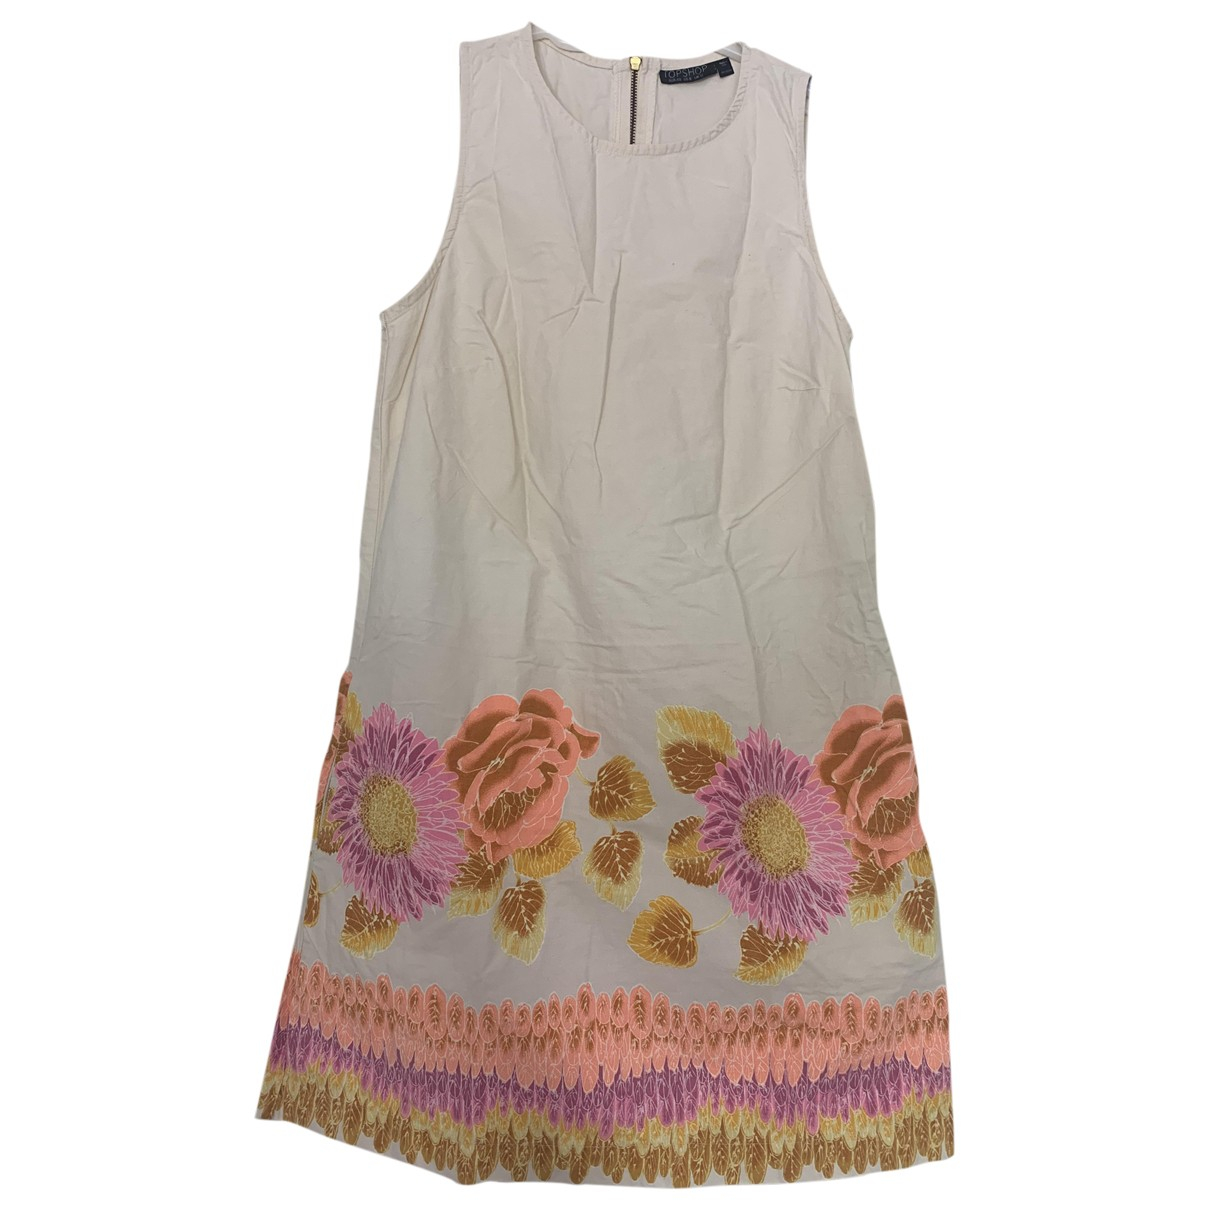 tophop \N Beige Cotton dress for Women 8 UK